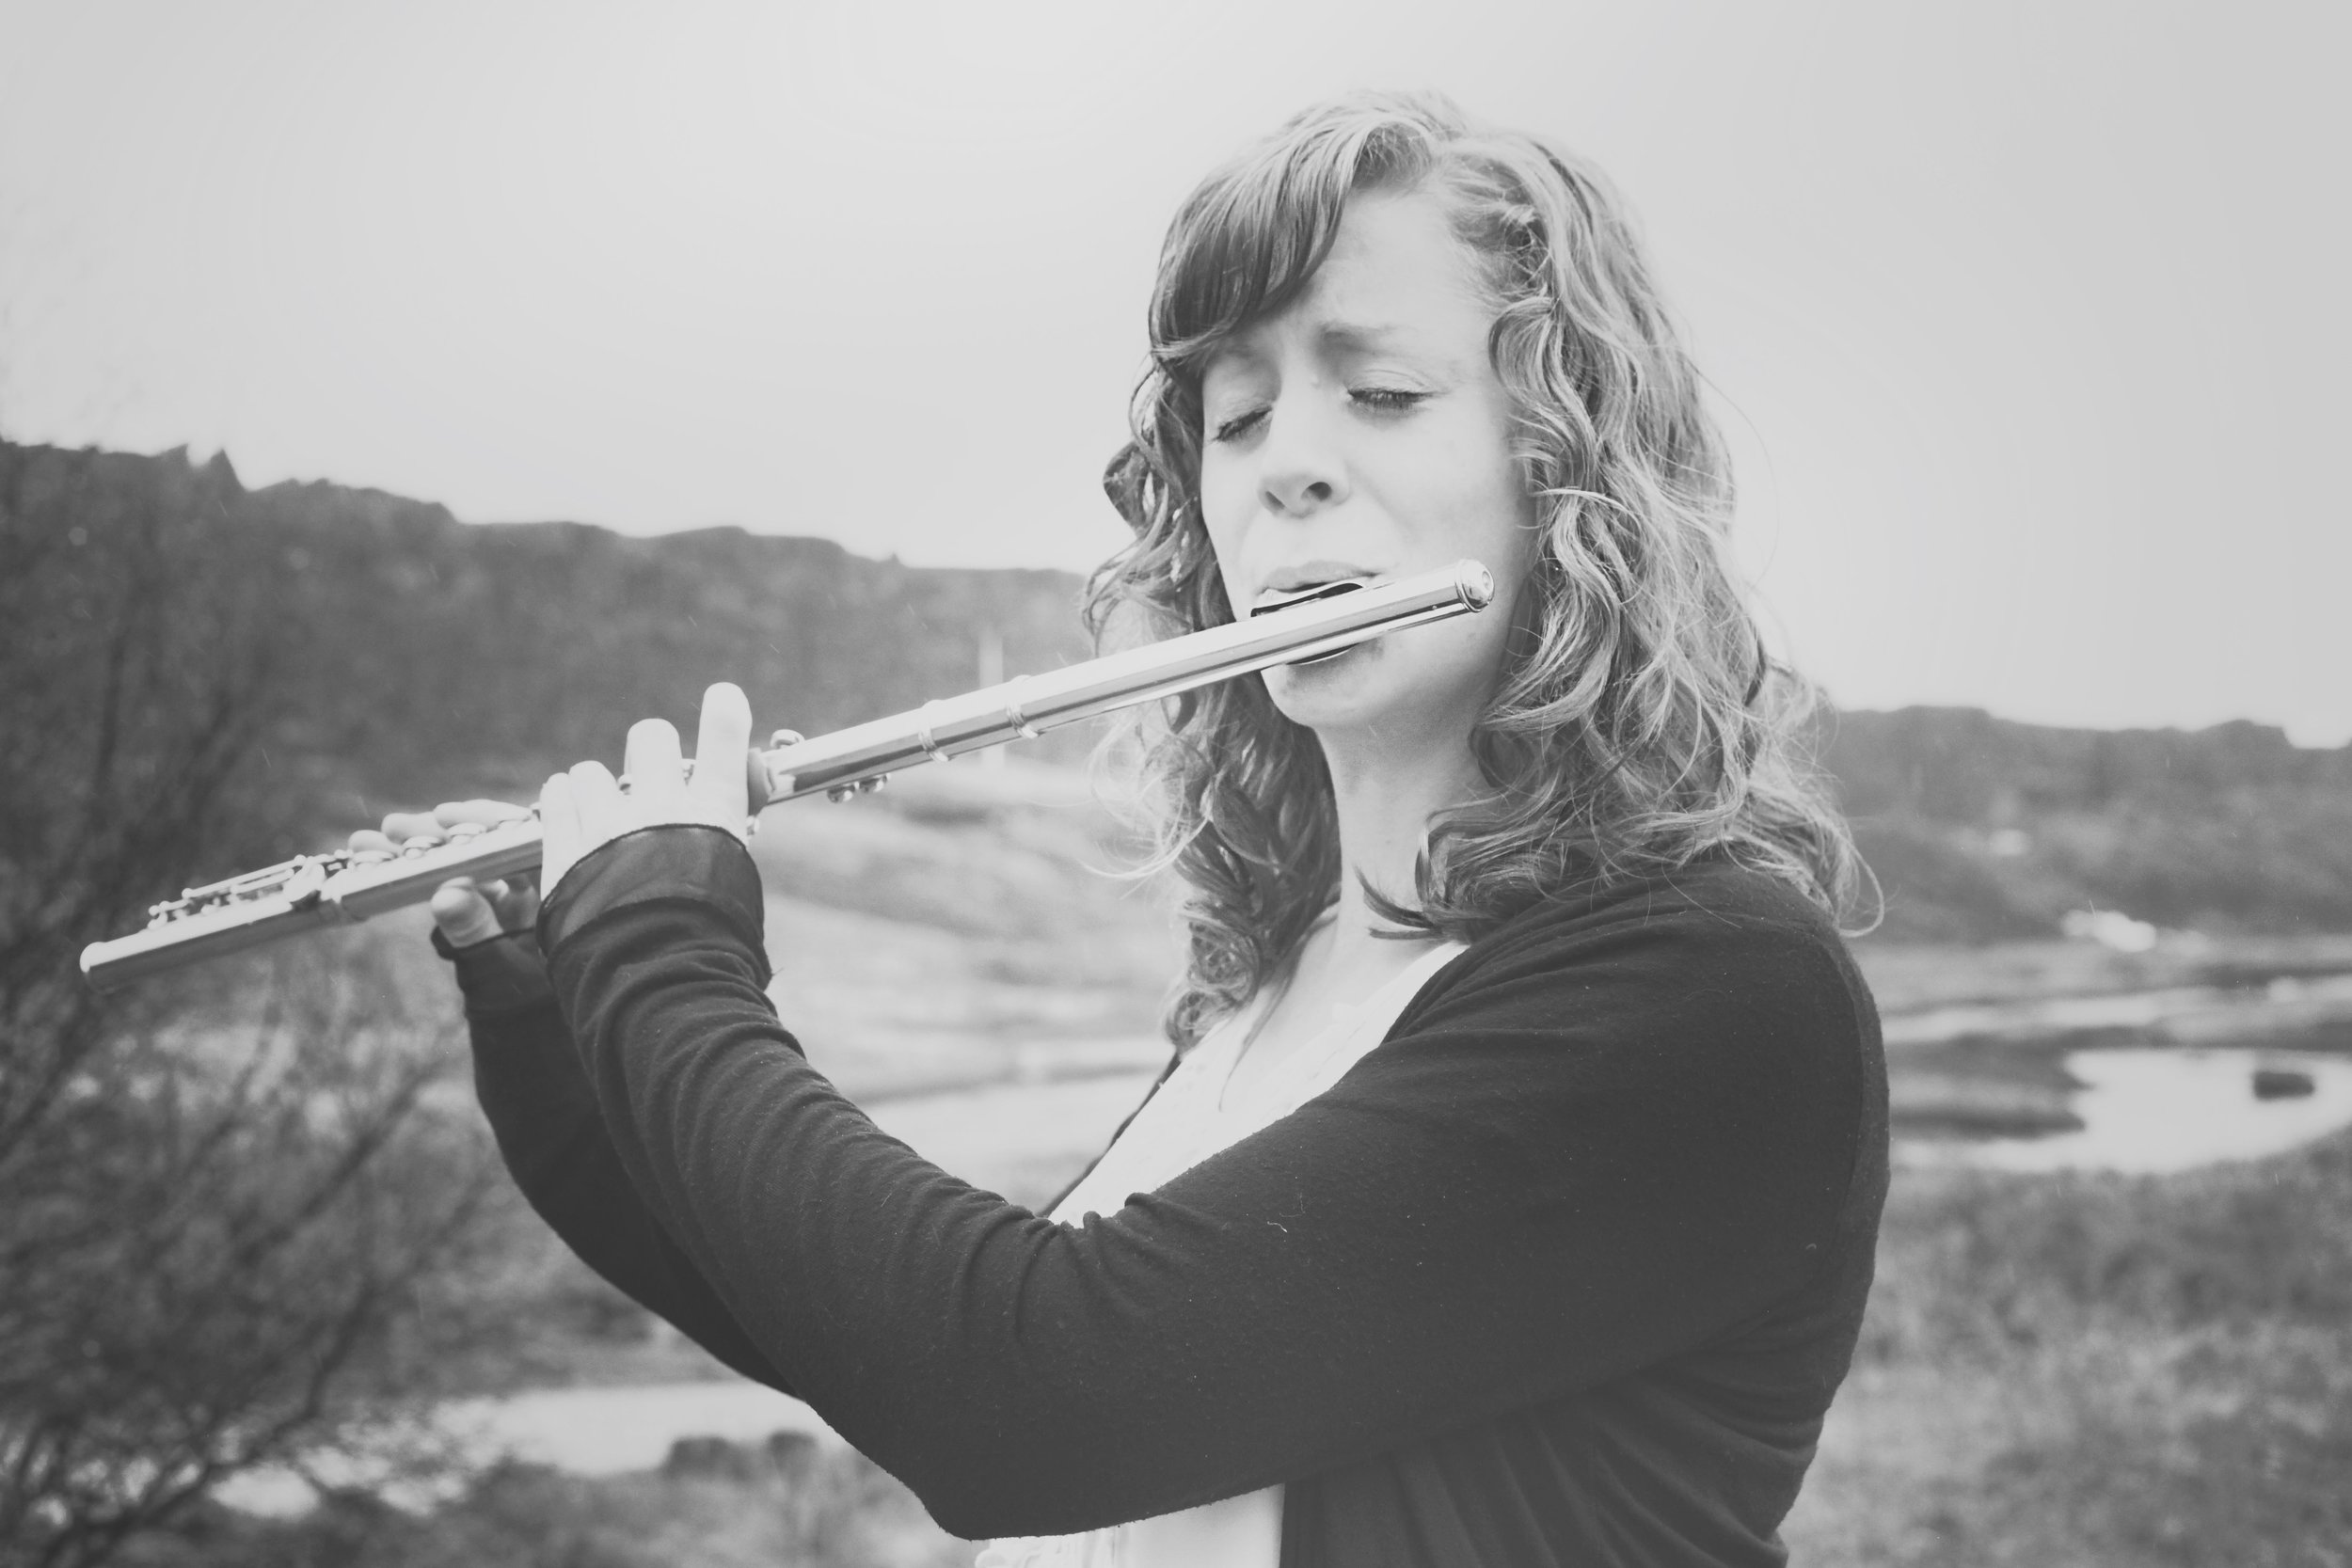 Karen Brubaker (USA) - KAREN holds a Master's degree in Flute Performance from Bern University of the Arts in Switzerland. One of her passions is using music to connect with people across different cultures, disciplines, faiths, and social statuses. Karen has fun exploring & teaching beatbox flute, loves traveling to new places, and relishes connecting with friends over a good, strong cup of coffee.